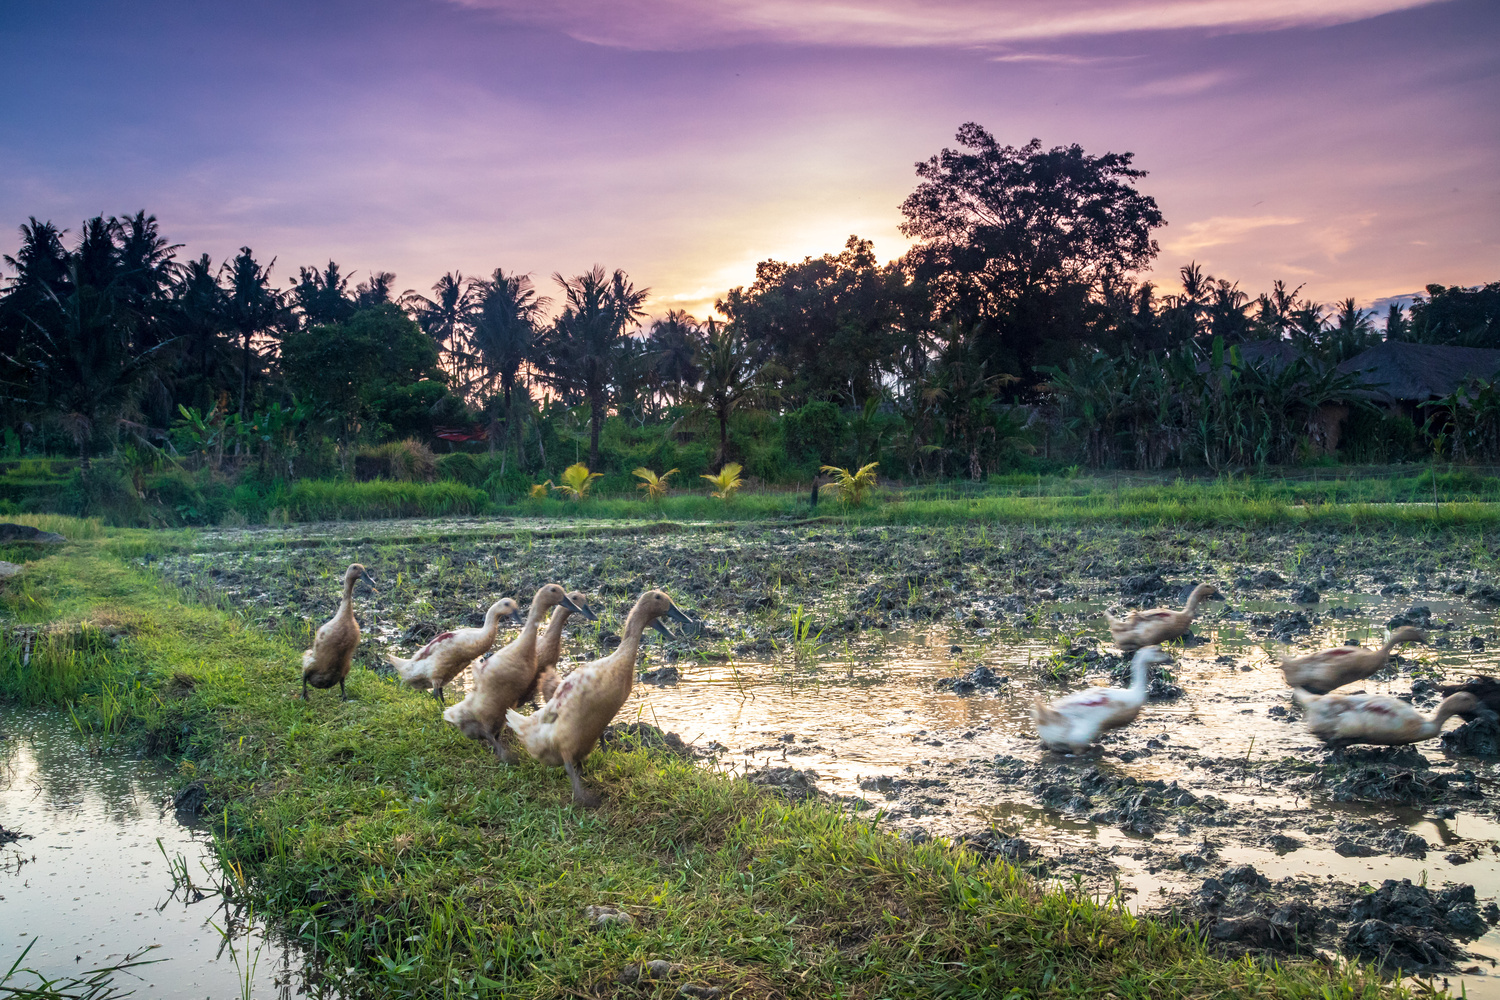 Home Time For Ducks by Robert Smith